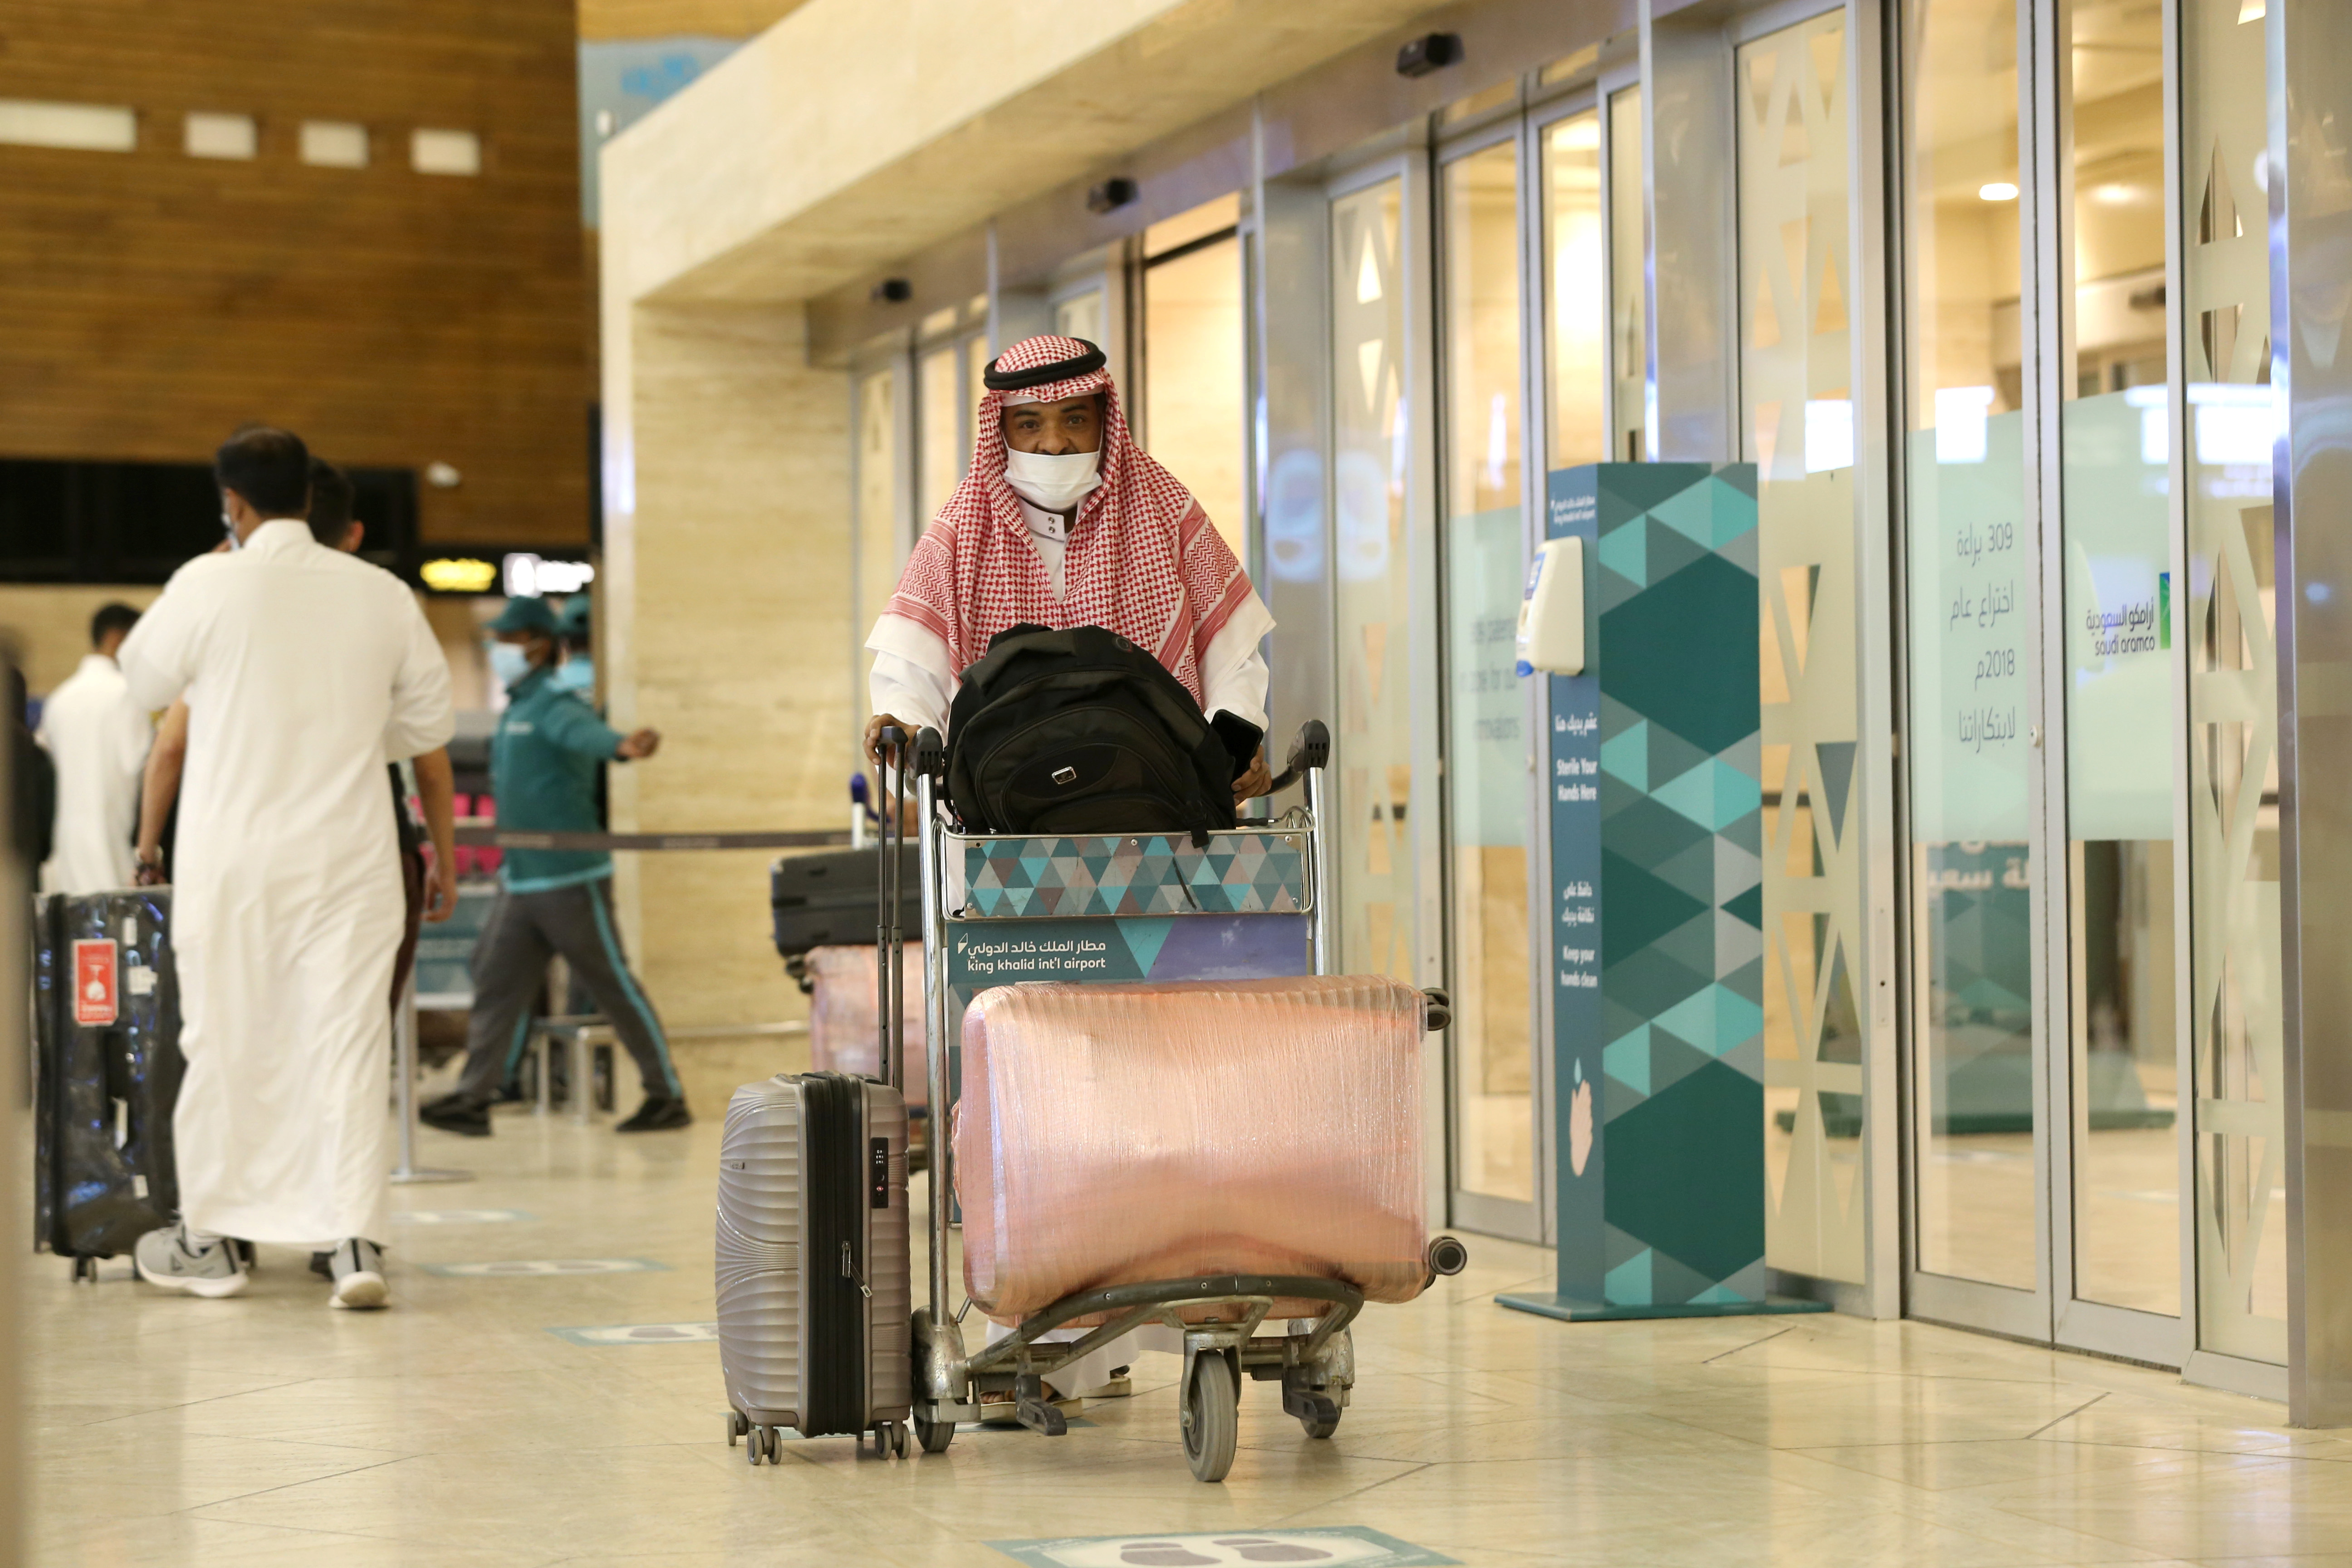 A Saudi man wearing a face mask is seen with his luggage as he arrives at the King Khalid International Airport, after Saudi authorities lift the travel ban on its citizens after fourteen months due to Coronavirus (COVID-19) restrictions, in Riyadh, Saudi Arabia, May 16, 2021. REUTERS/Ahmed Yosri/Files